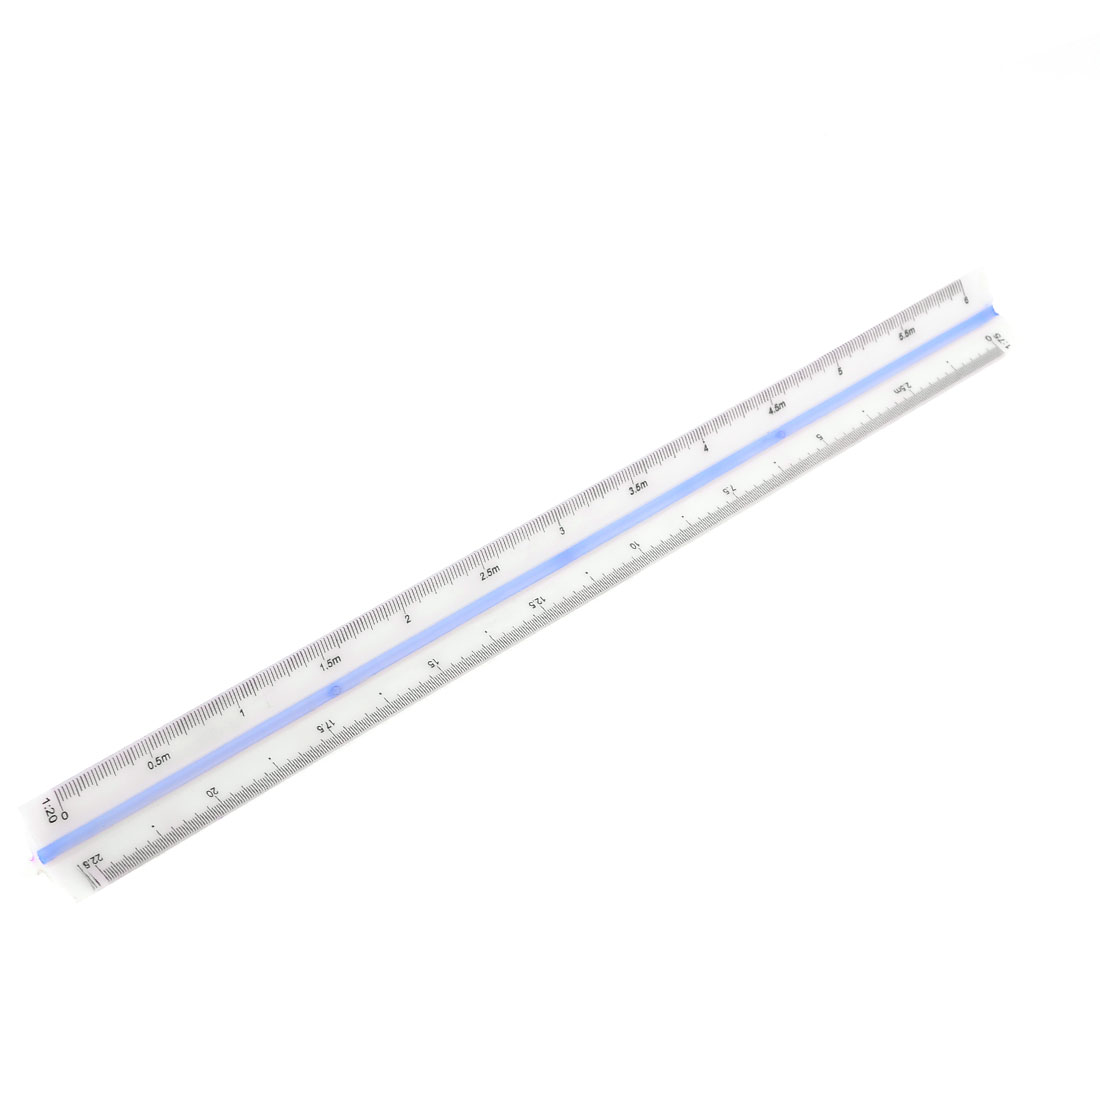 Engineer Plastic Triangular Scale Ruler 1:20 1:25 1:50 1:75 1:100 1:125